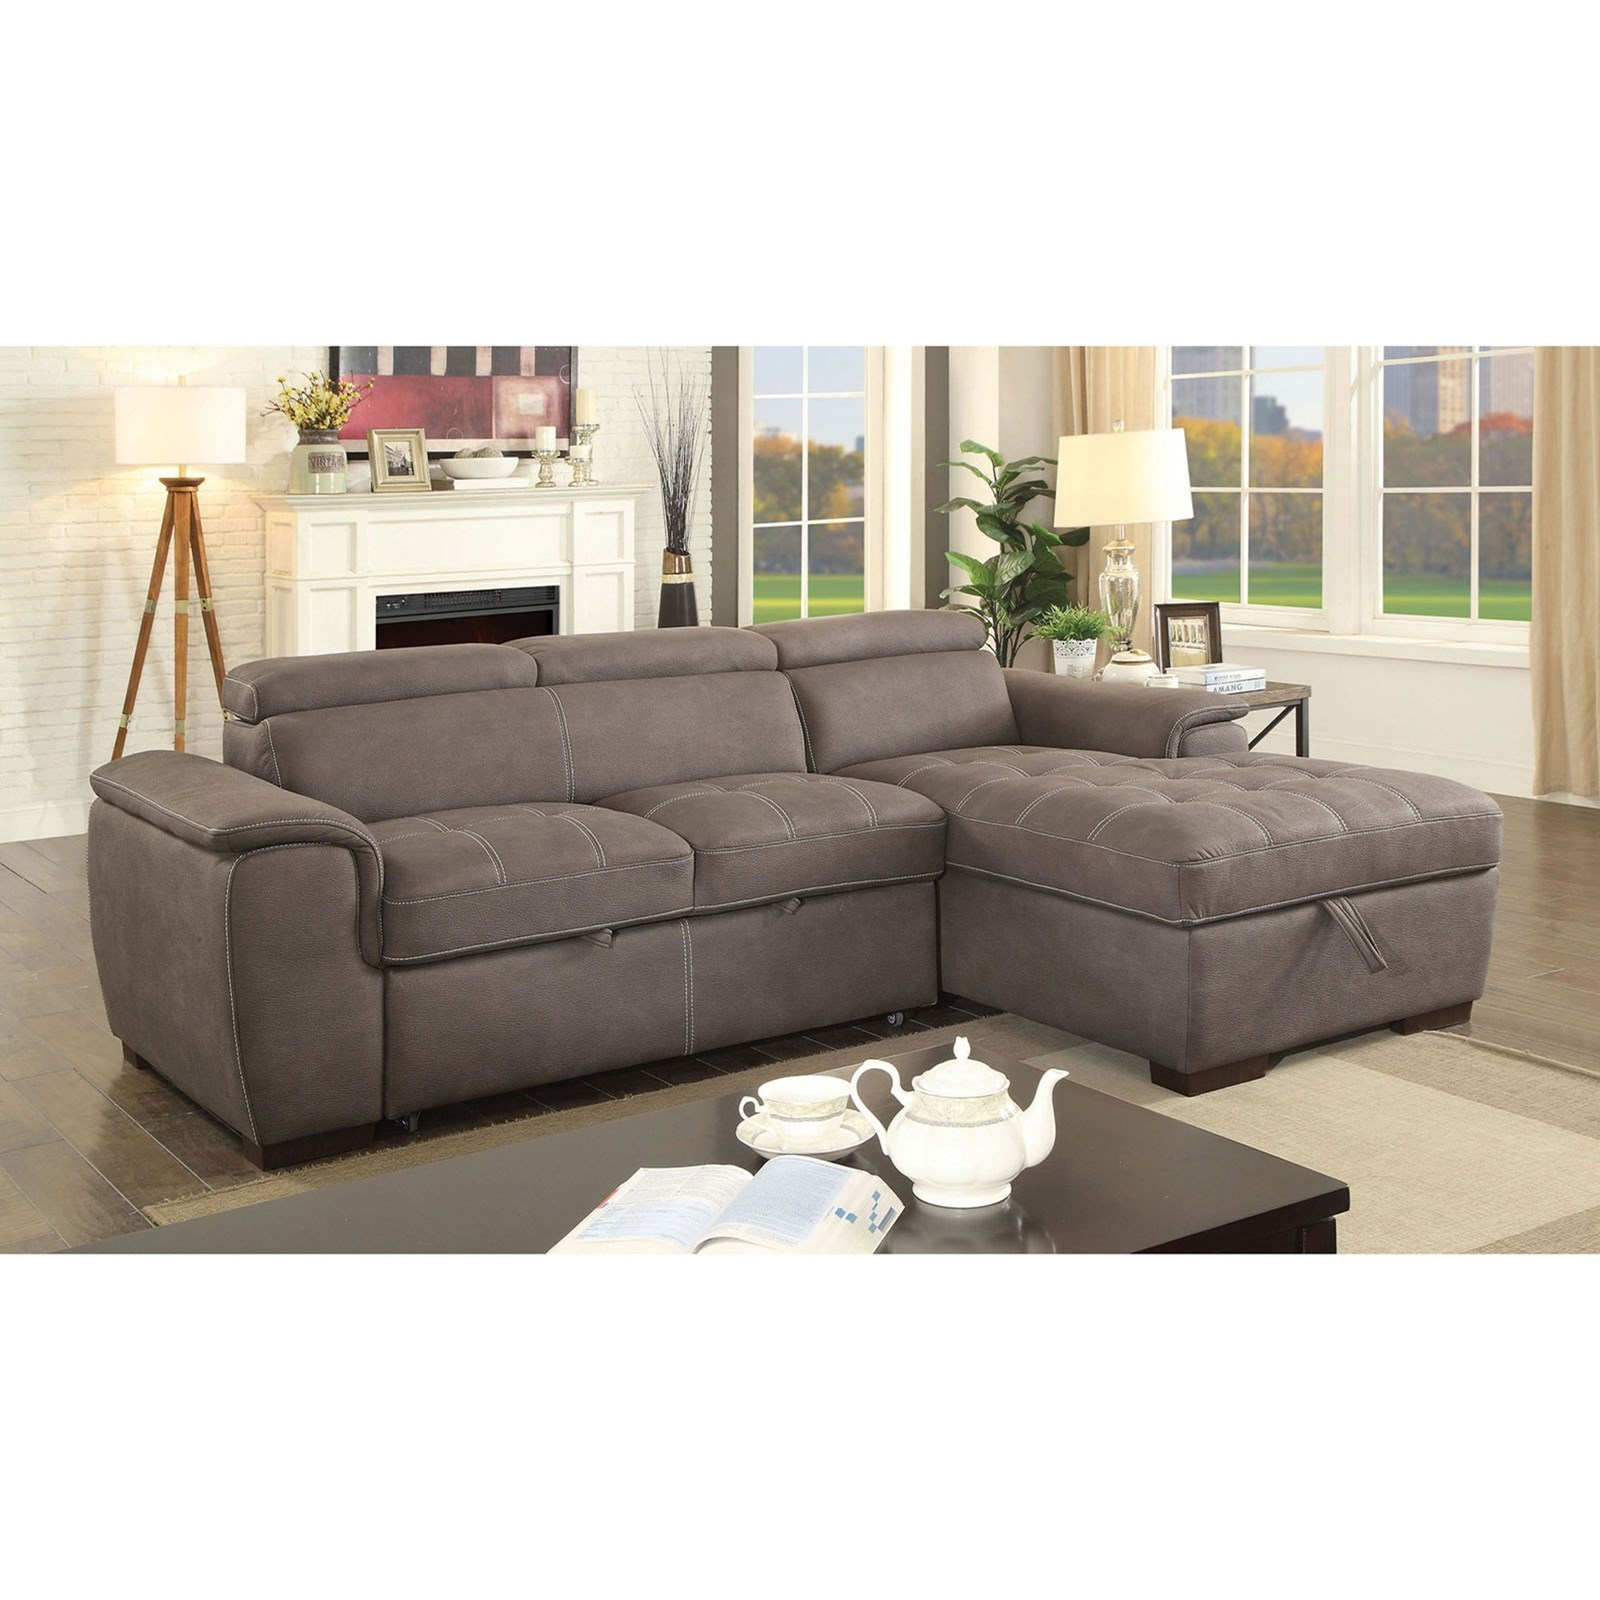 Furniture Of America Patty Sofa Sectional With Pull Out Sleeper And